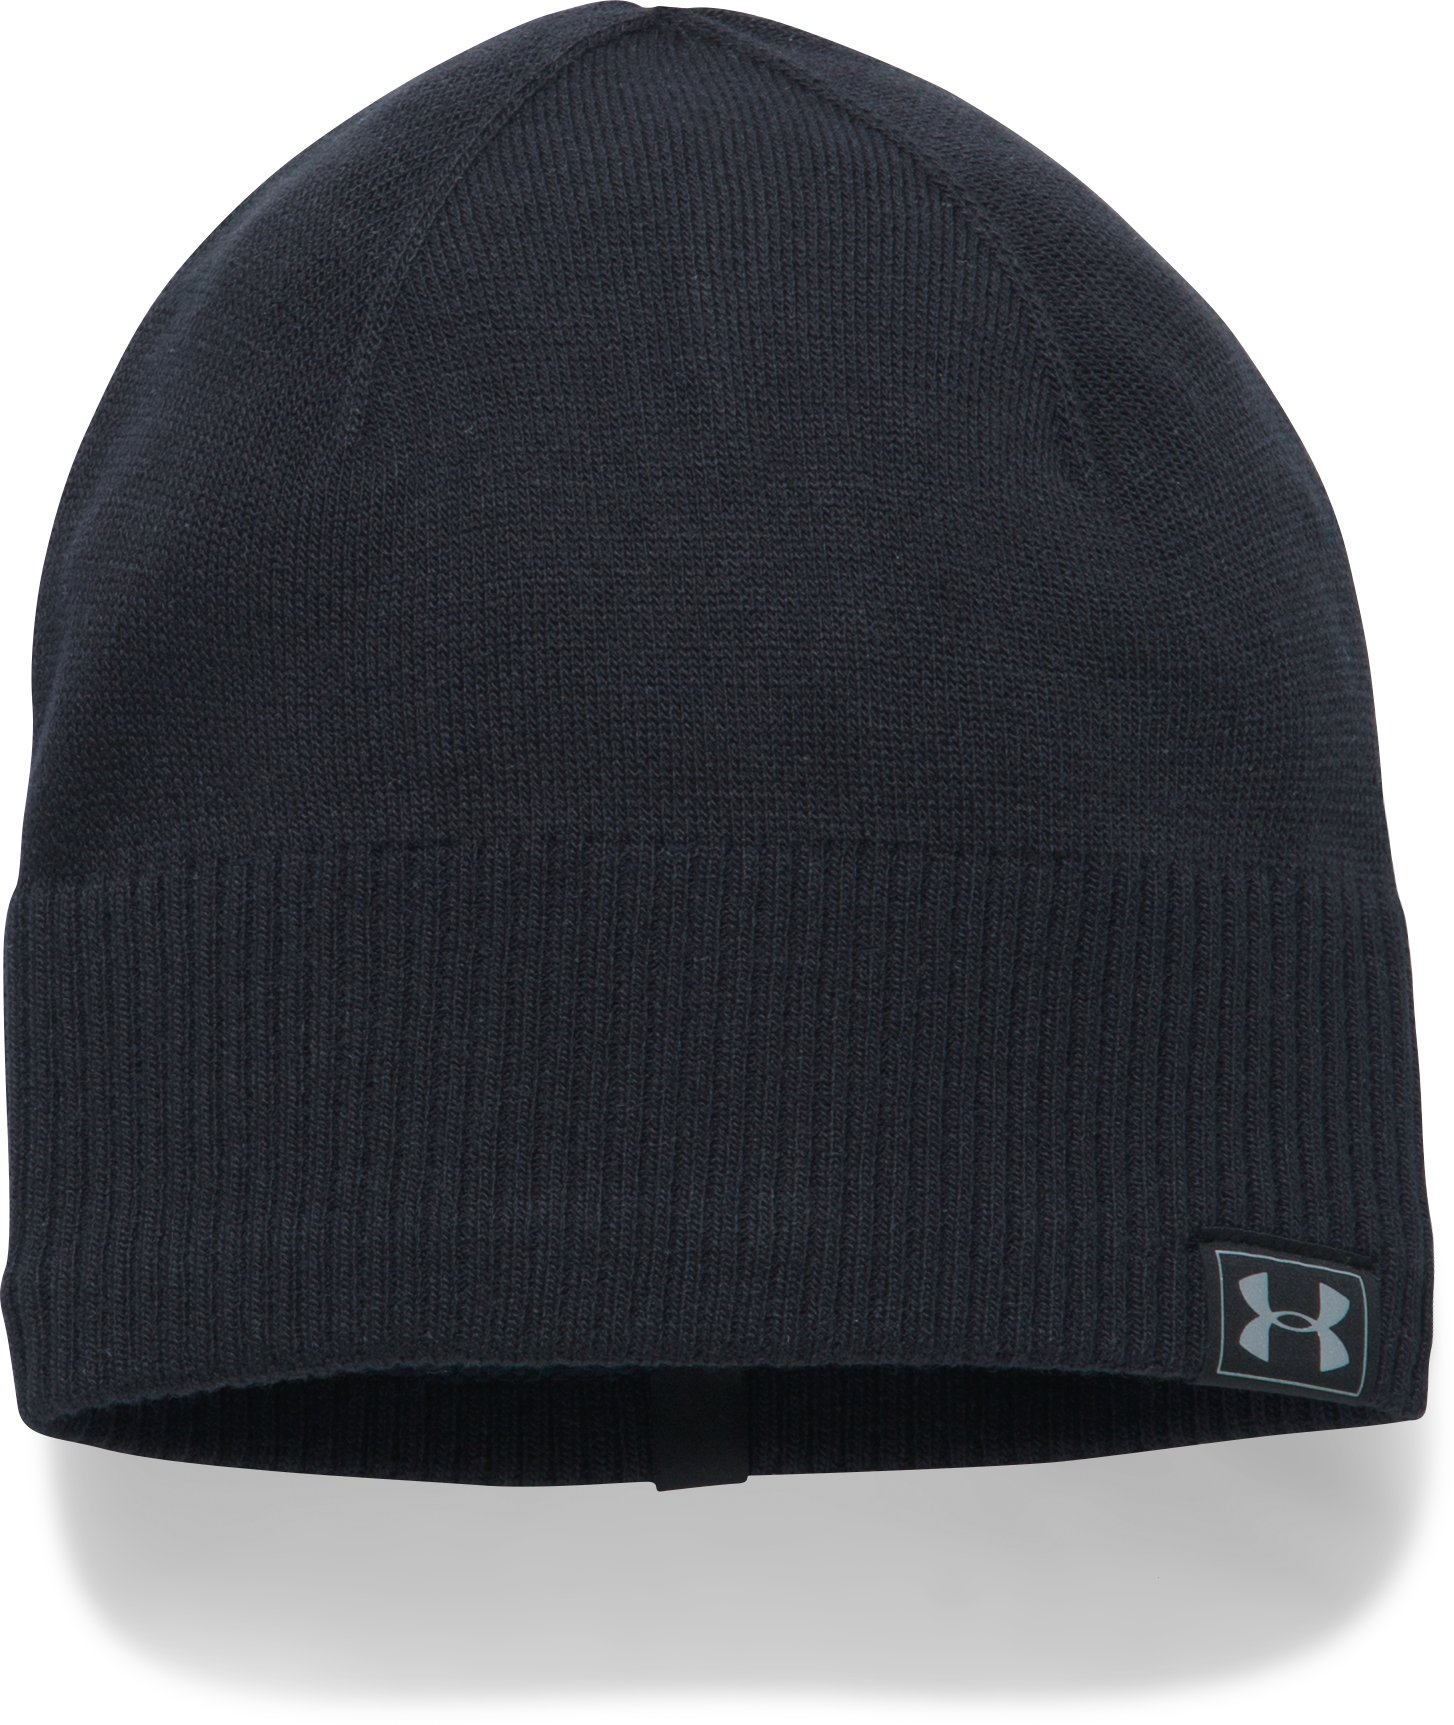 Men's ColdGear® Reactor Knit Beanie, Black , undefined